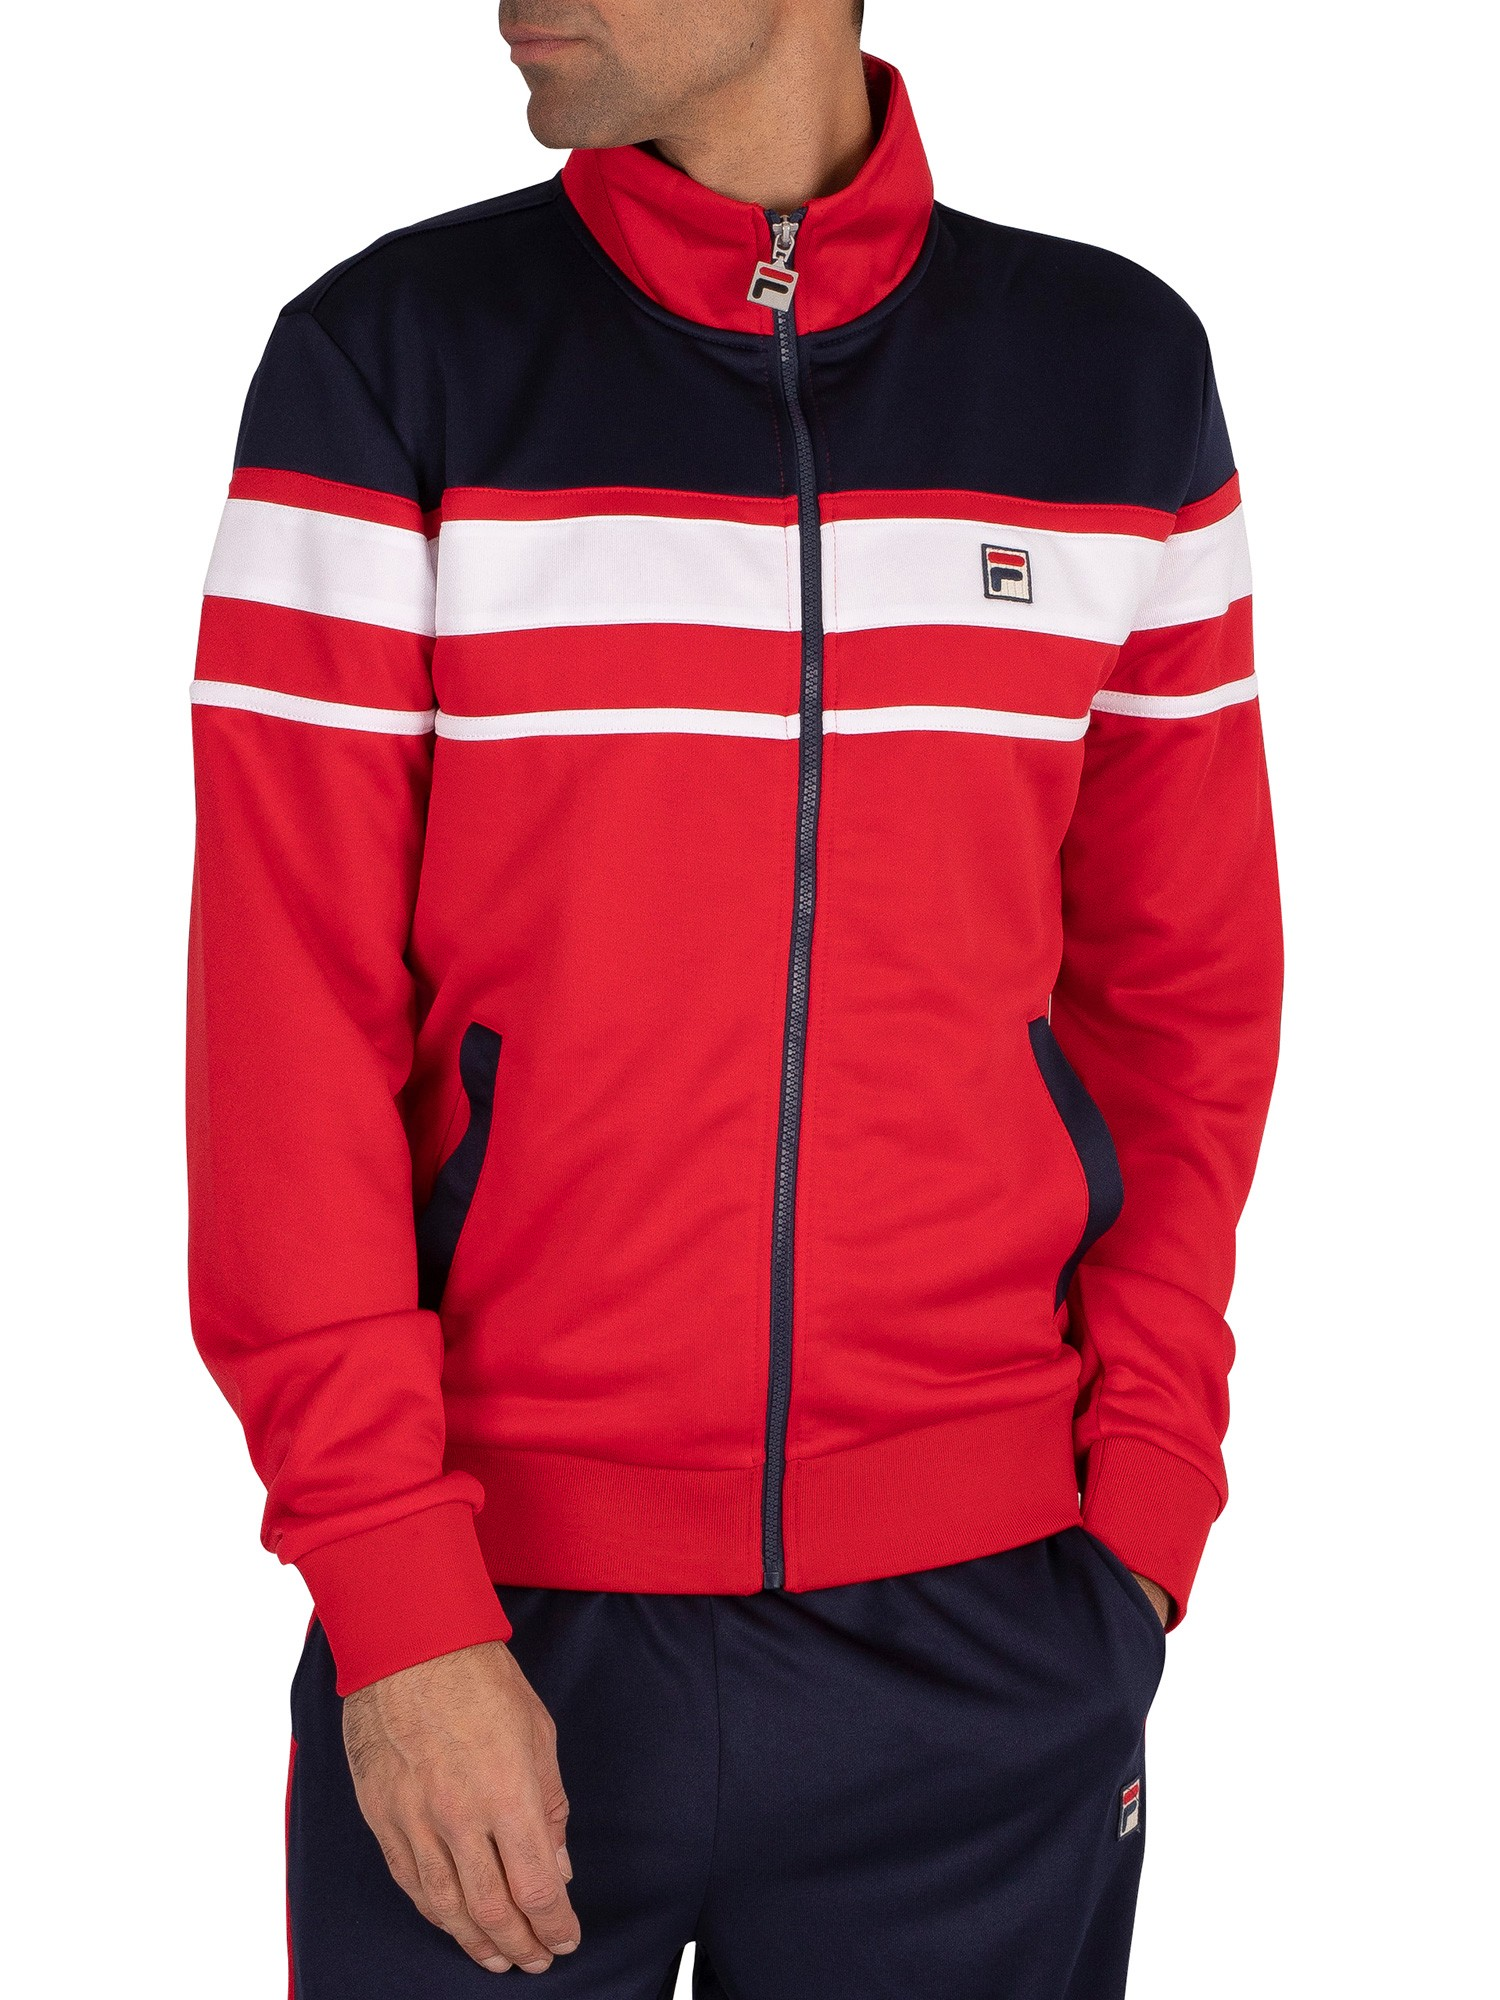 Fila Gordon Colour Block Track Jacket - Red/Peacoat/White